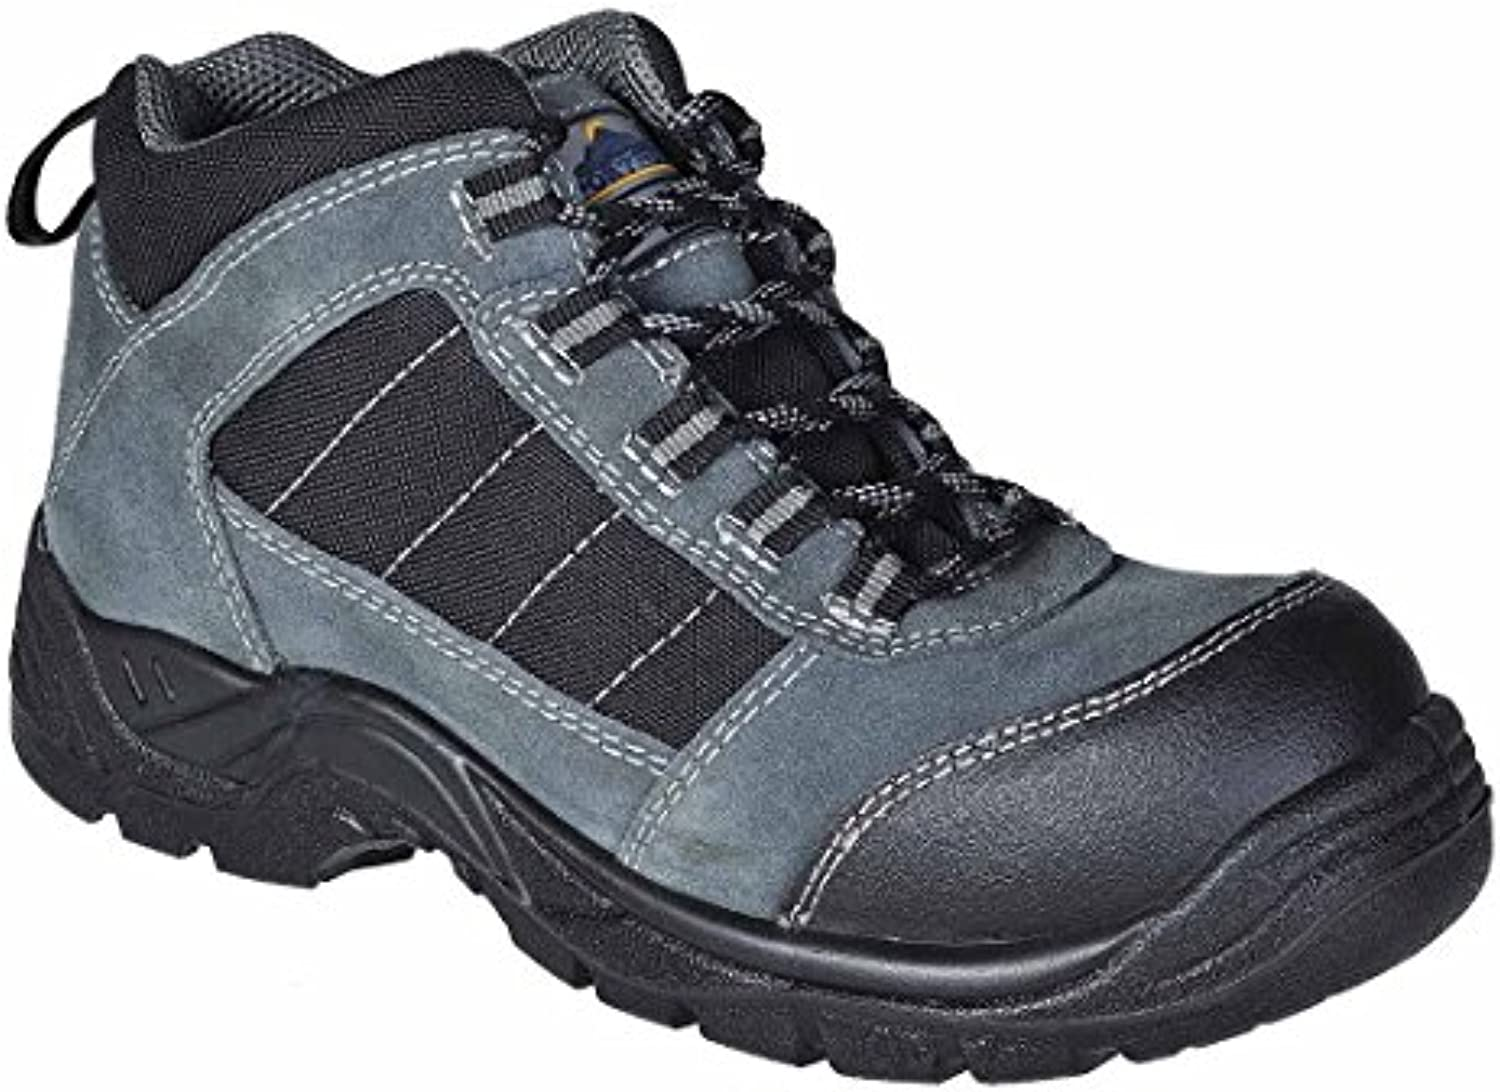 Portwest FC63 - Trekker Boot S1-44/10, color Negro, talla 44